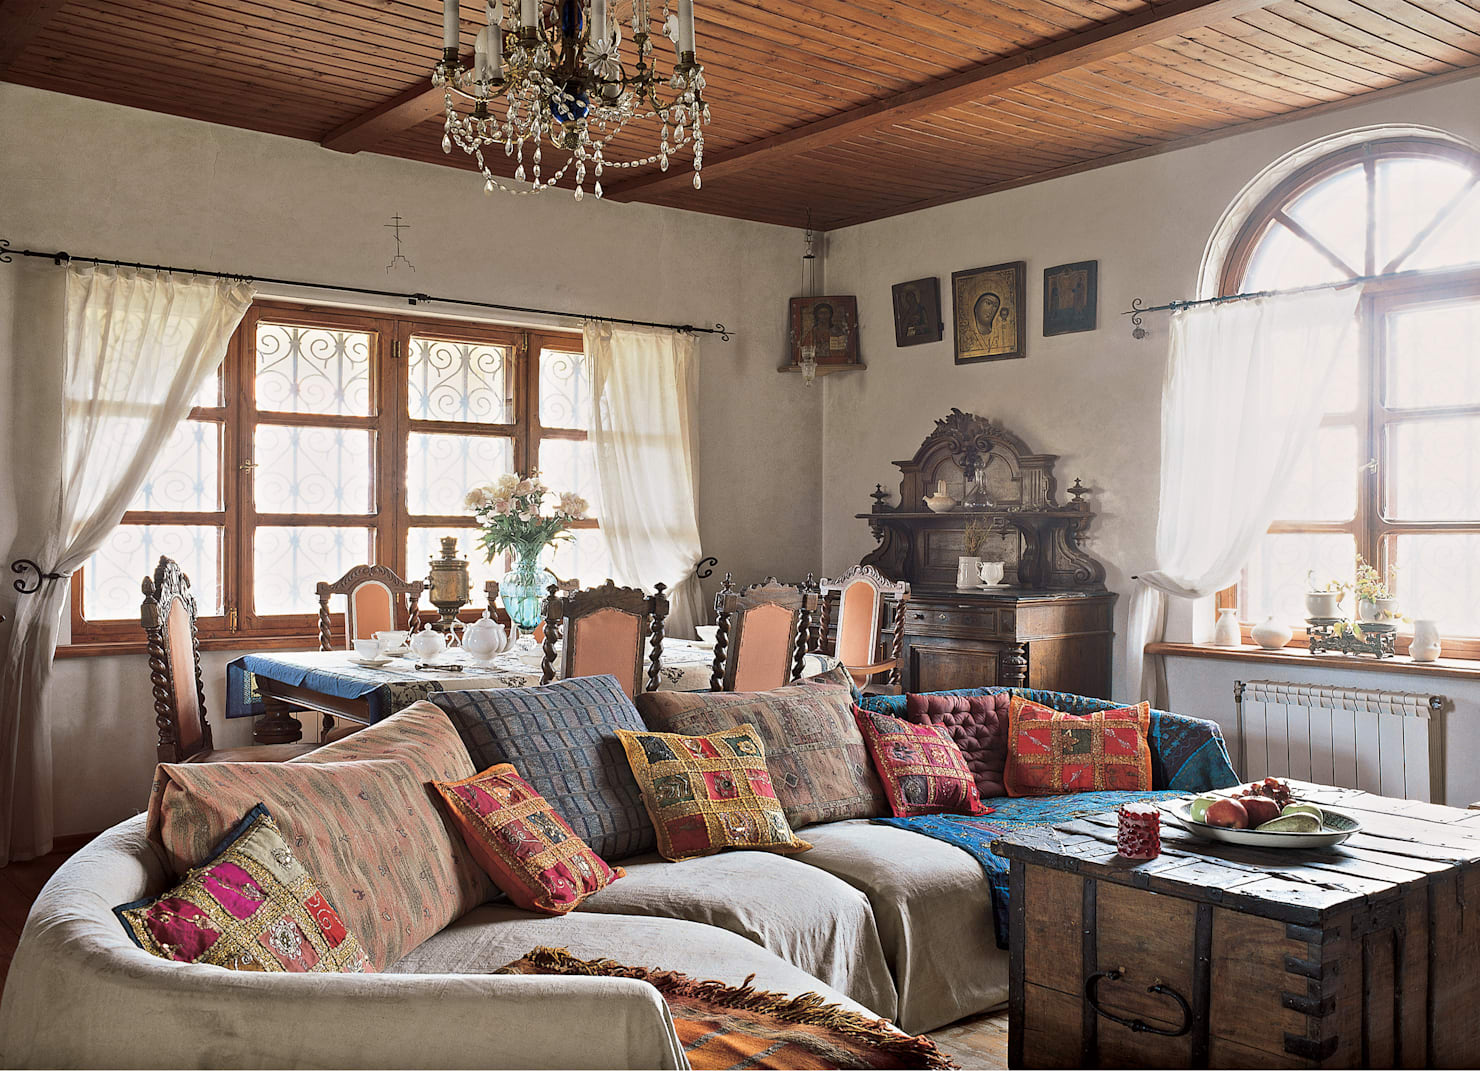 Get comfy with the vintage charm!